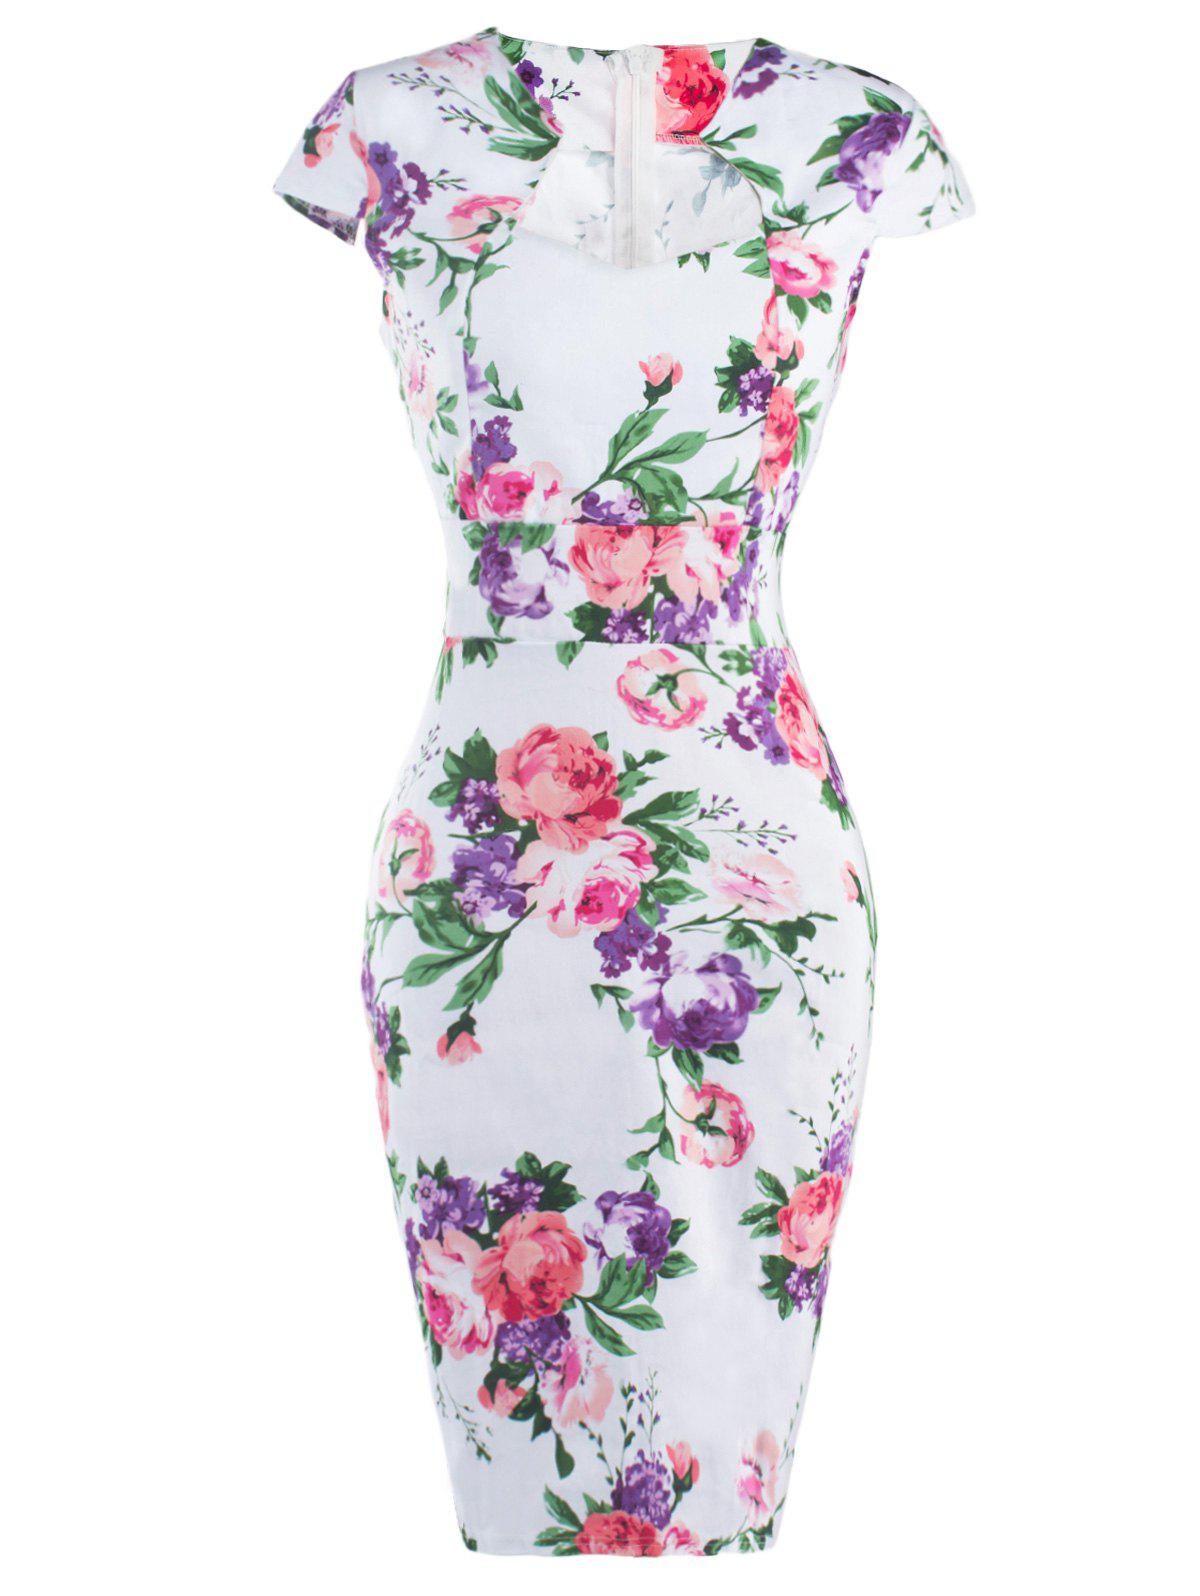 Floral Cheongsam Midi Bodycon Dress cheongsam floral pattern bodycon dress